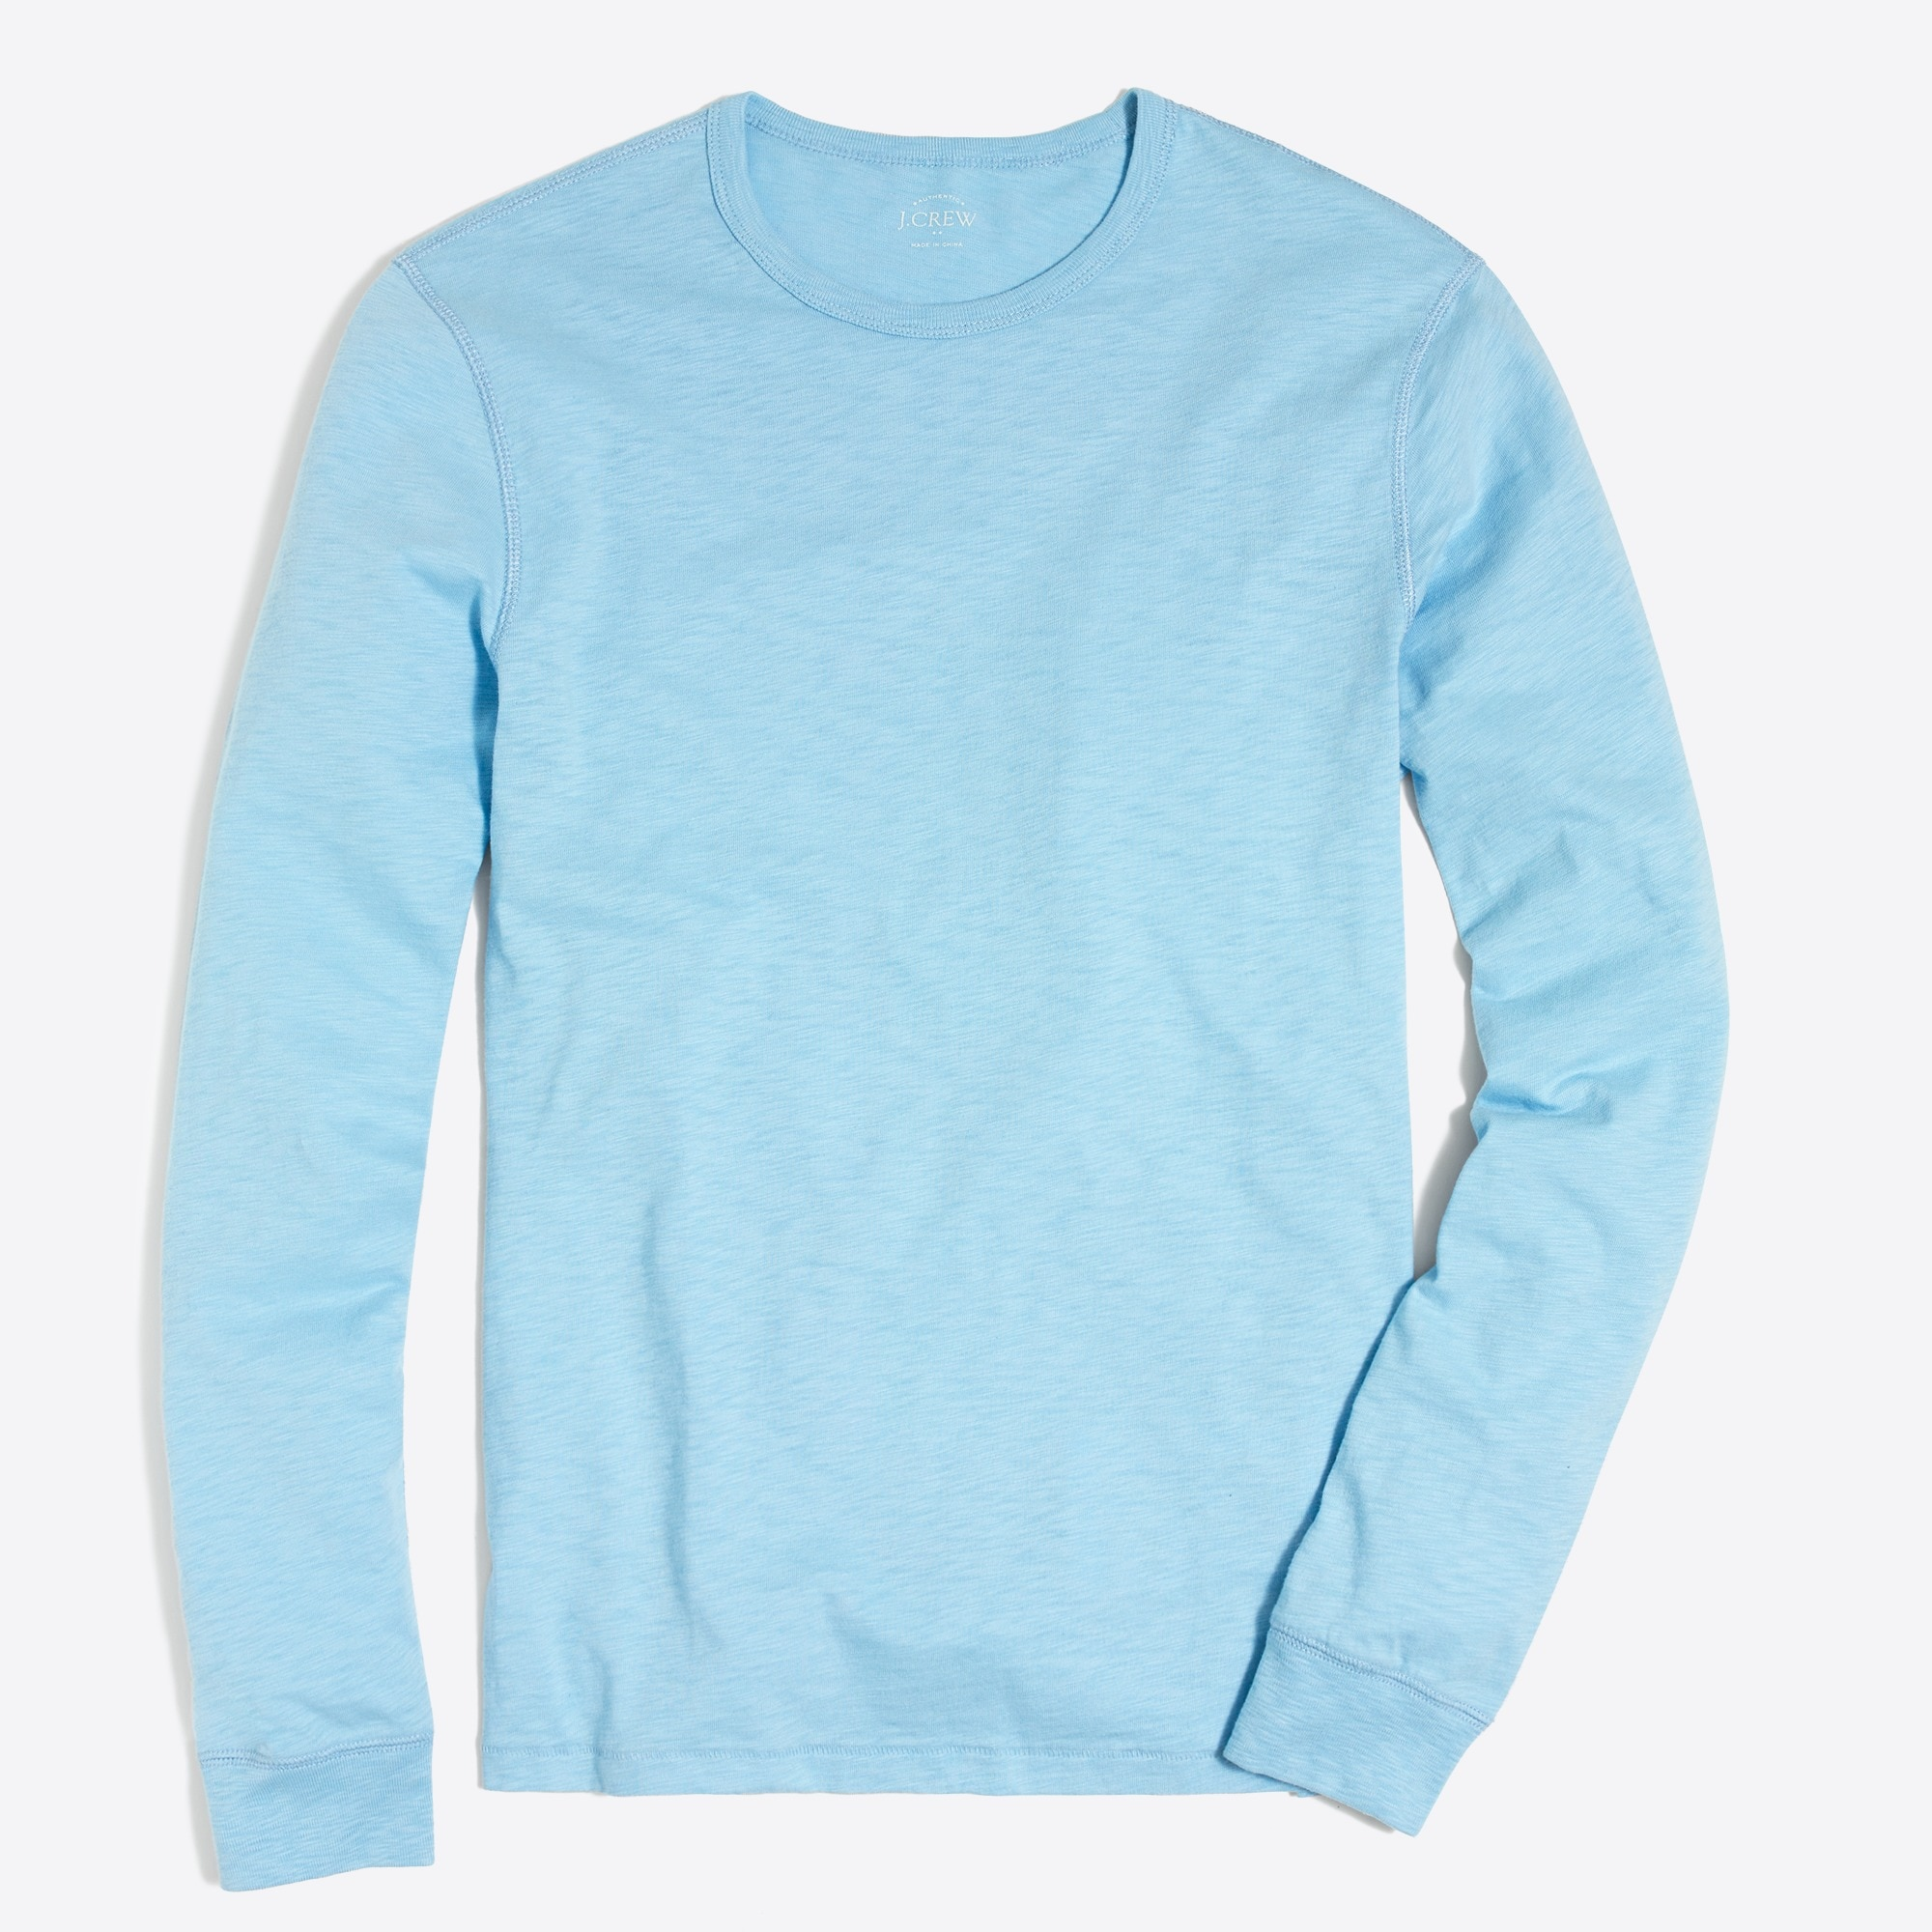 Image 1 for Long-sleeve textured cotton T-shirt